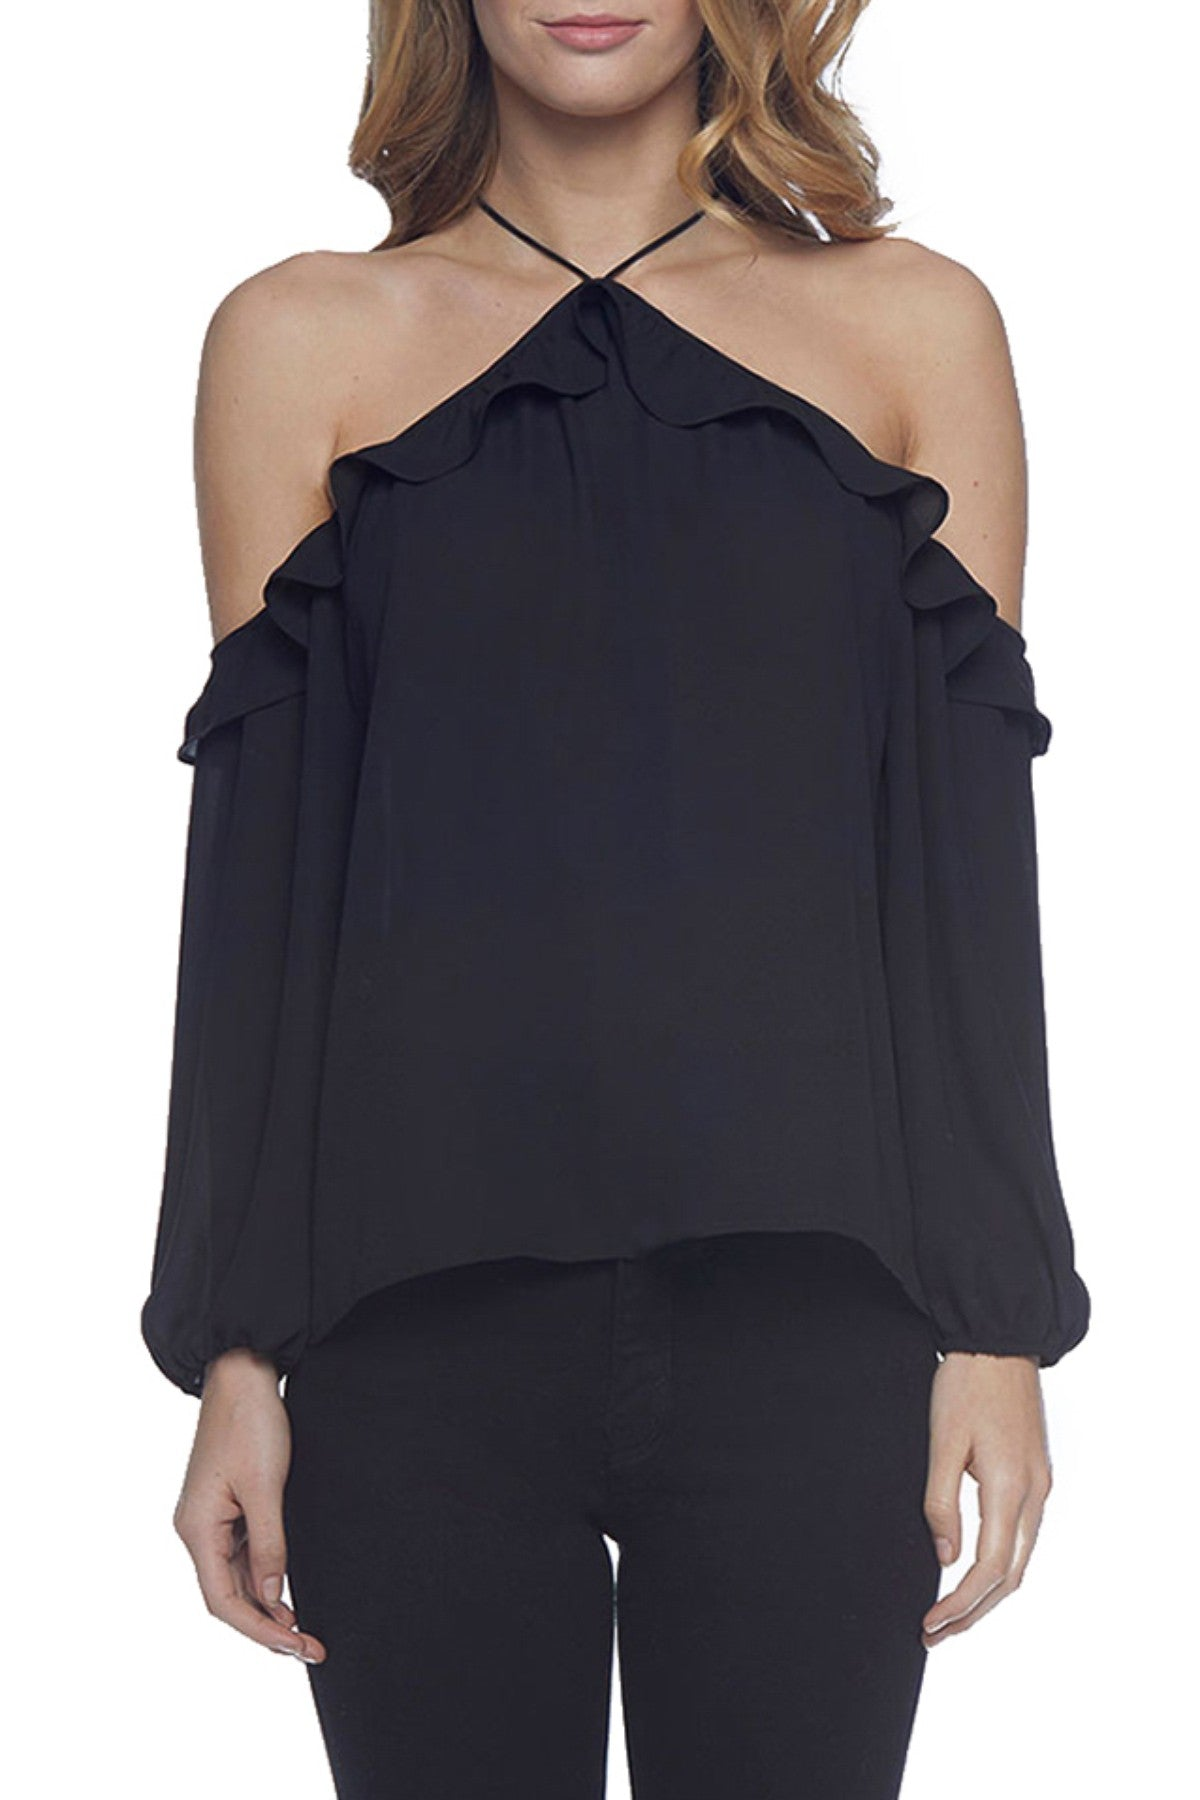 BB Dakota Carly Top in Black BH304844